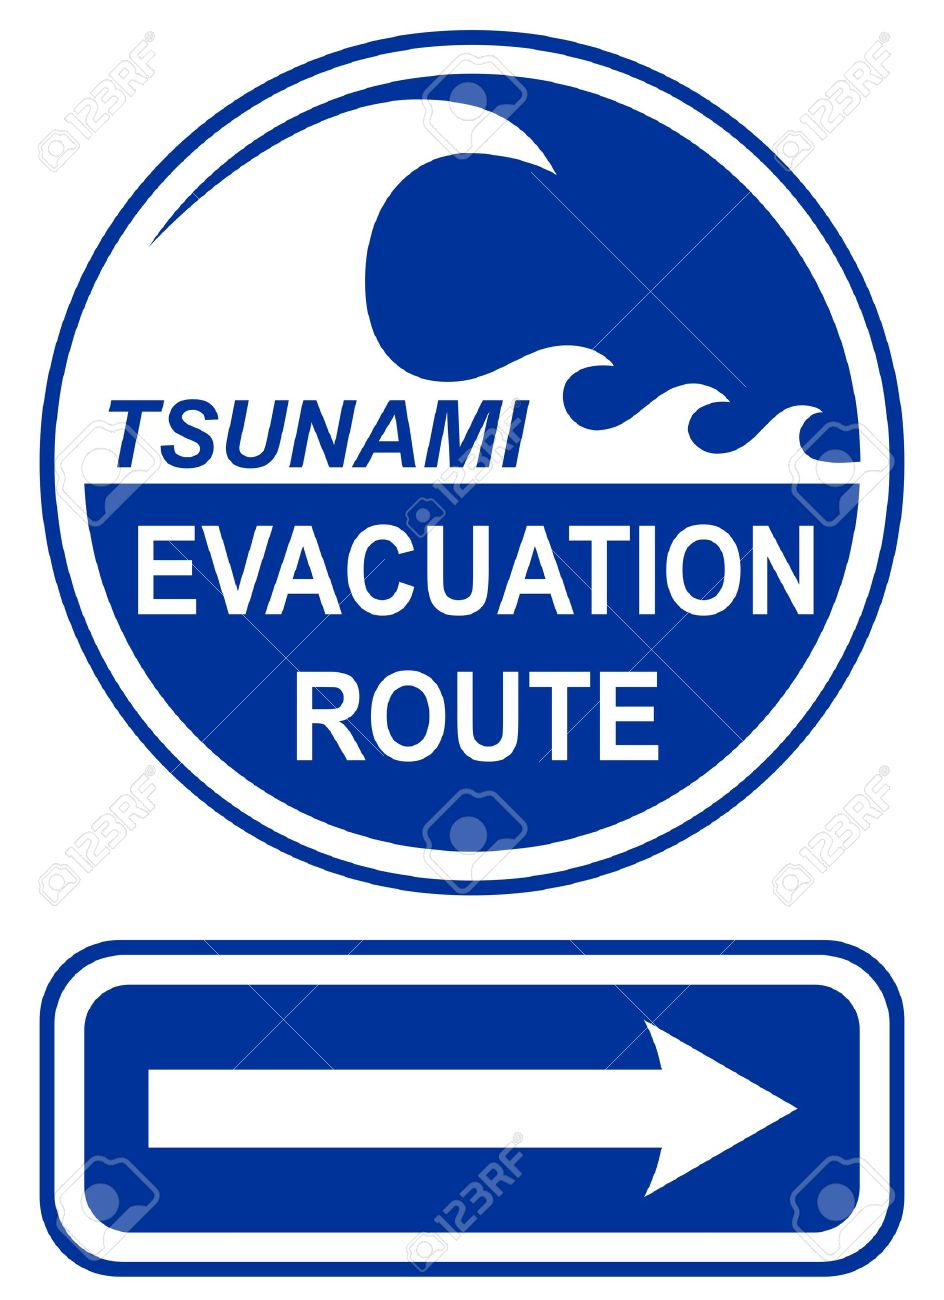 Tsunami Evacuation Route Sign Stock Vector - 9399324